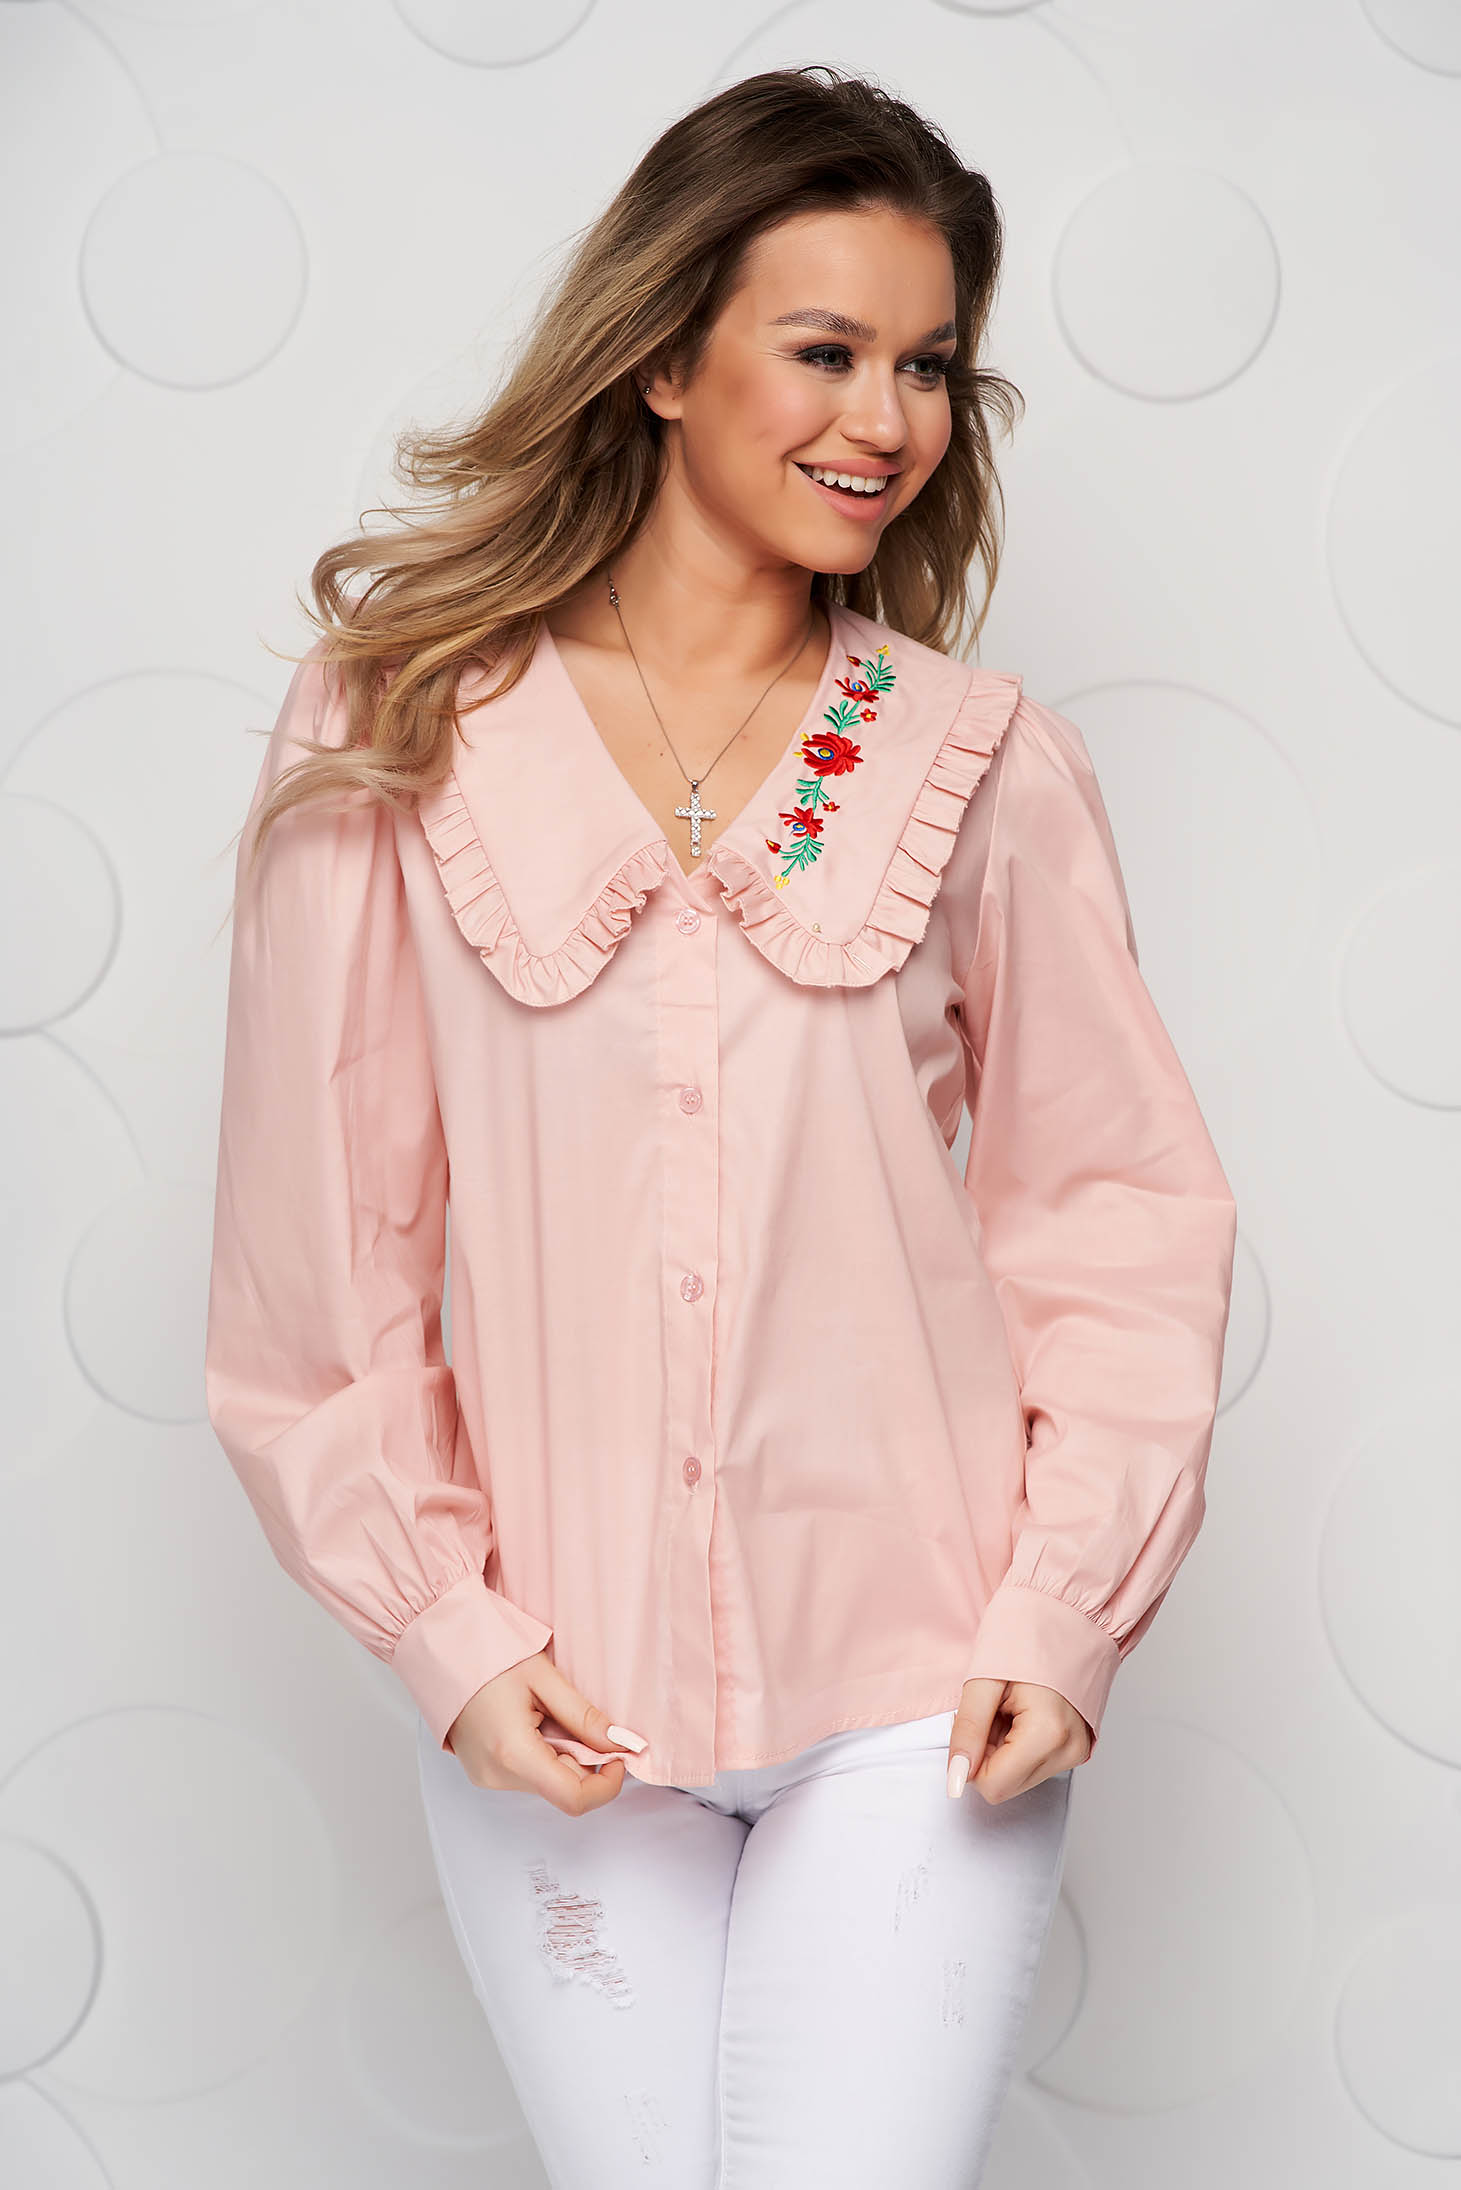 Peach women`s shirt cotton loose fit ruffled collar embroidered